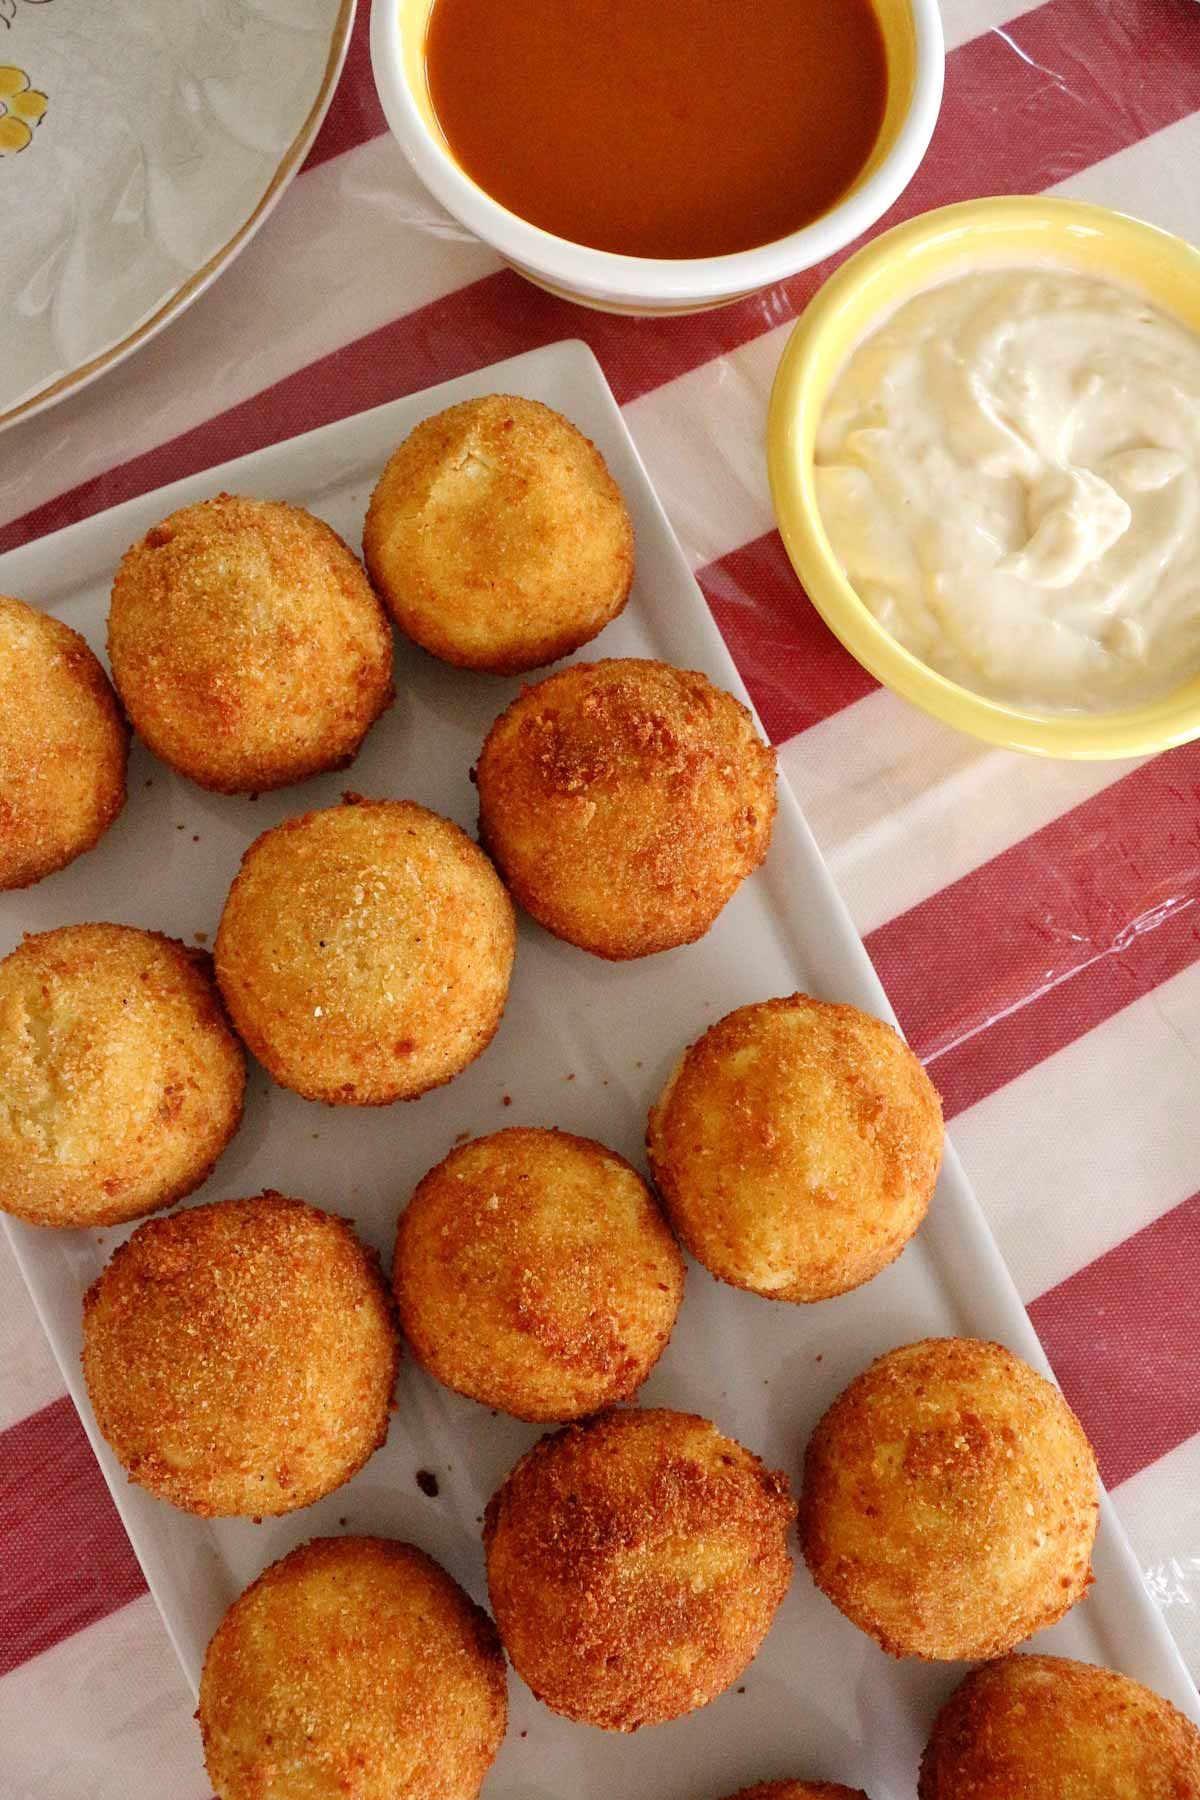 A white platter of fried potato bombas with bowls of red and white sauces.